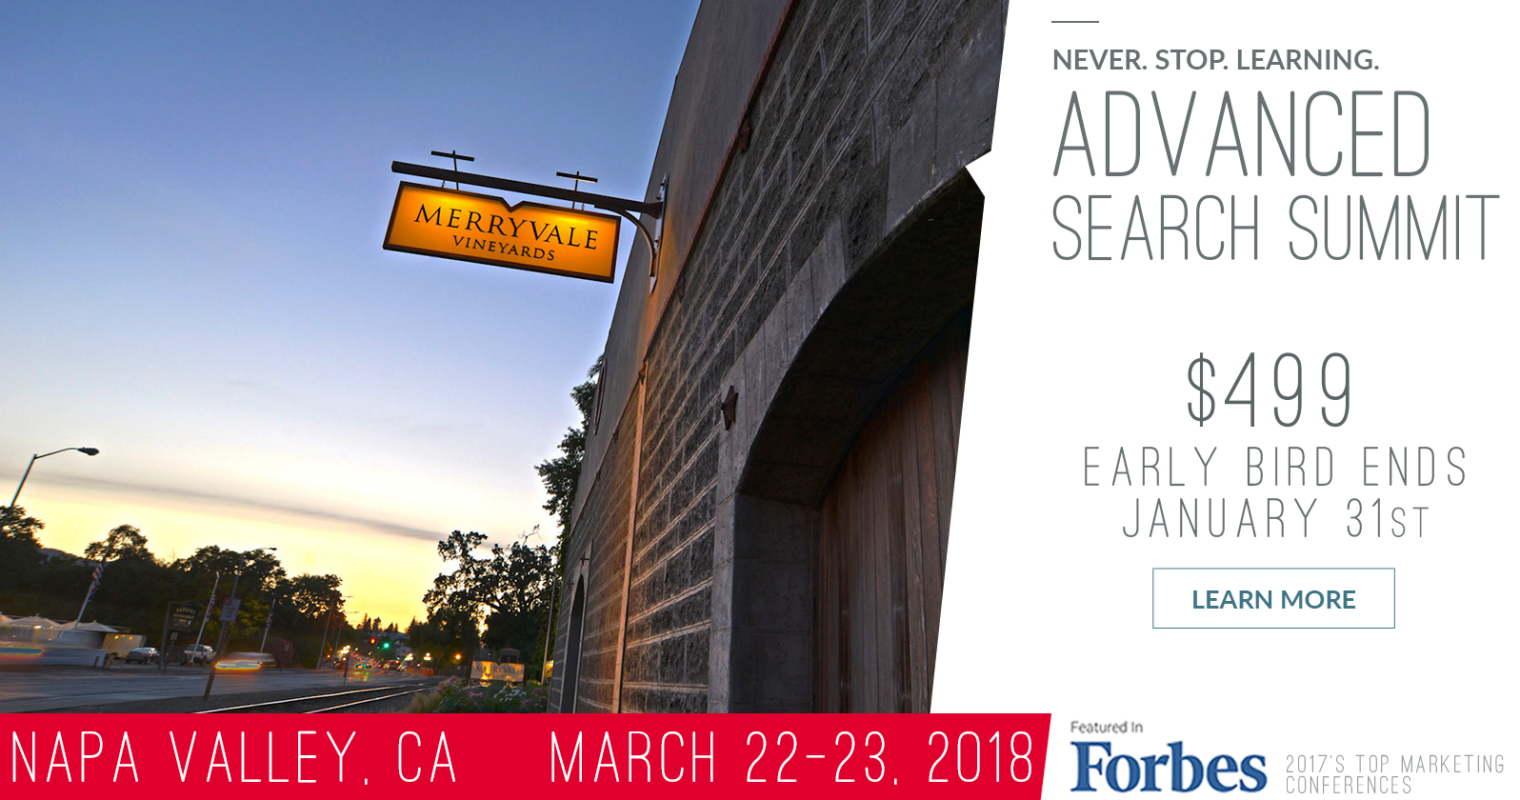 Advanced Search Summit Napa: An Experience You'll Never Forget!